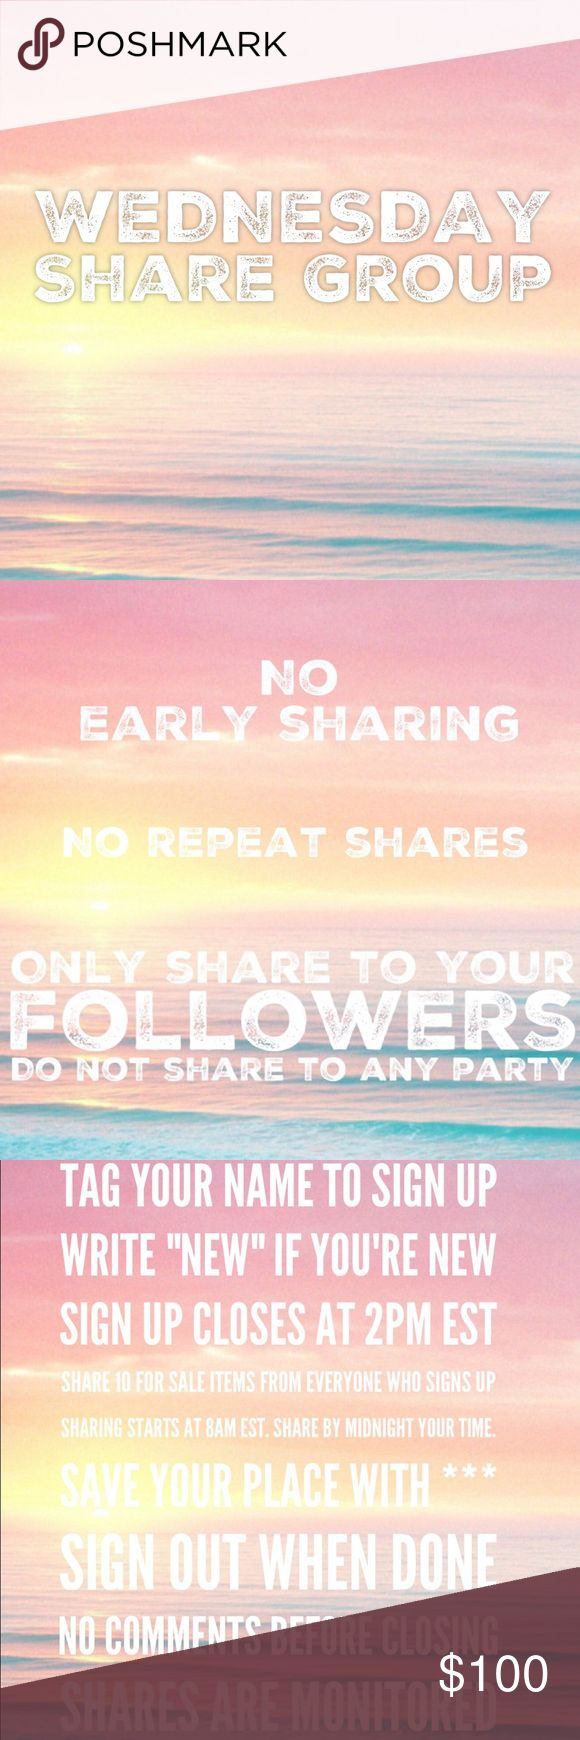 """2/8 Wed Share Group Sign up closes at 2pm est💞Tag your name to sign up💞Write """"new"""" if you're new💞Share 10 for sale items from everyone who signs up💞No sharing until 8am est. Share by midnight your time💞Share to your followers, NOT to parties💞Be Posh compliant or you may be skipped💞Mark your spot with ***and first 3 letters of where you left off💞Sign out when done💞 Be fair and do your part or you will be blocked💞Please only ask questions in the Q&A listing under """"other.""""💞No…"""